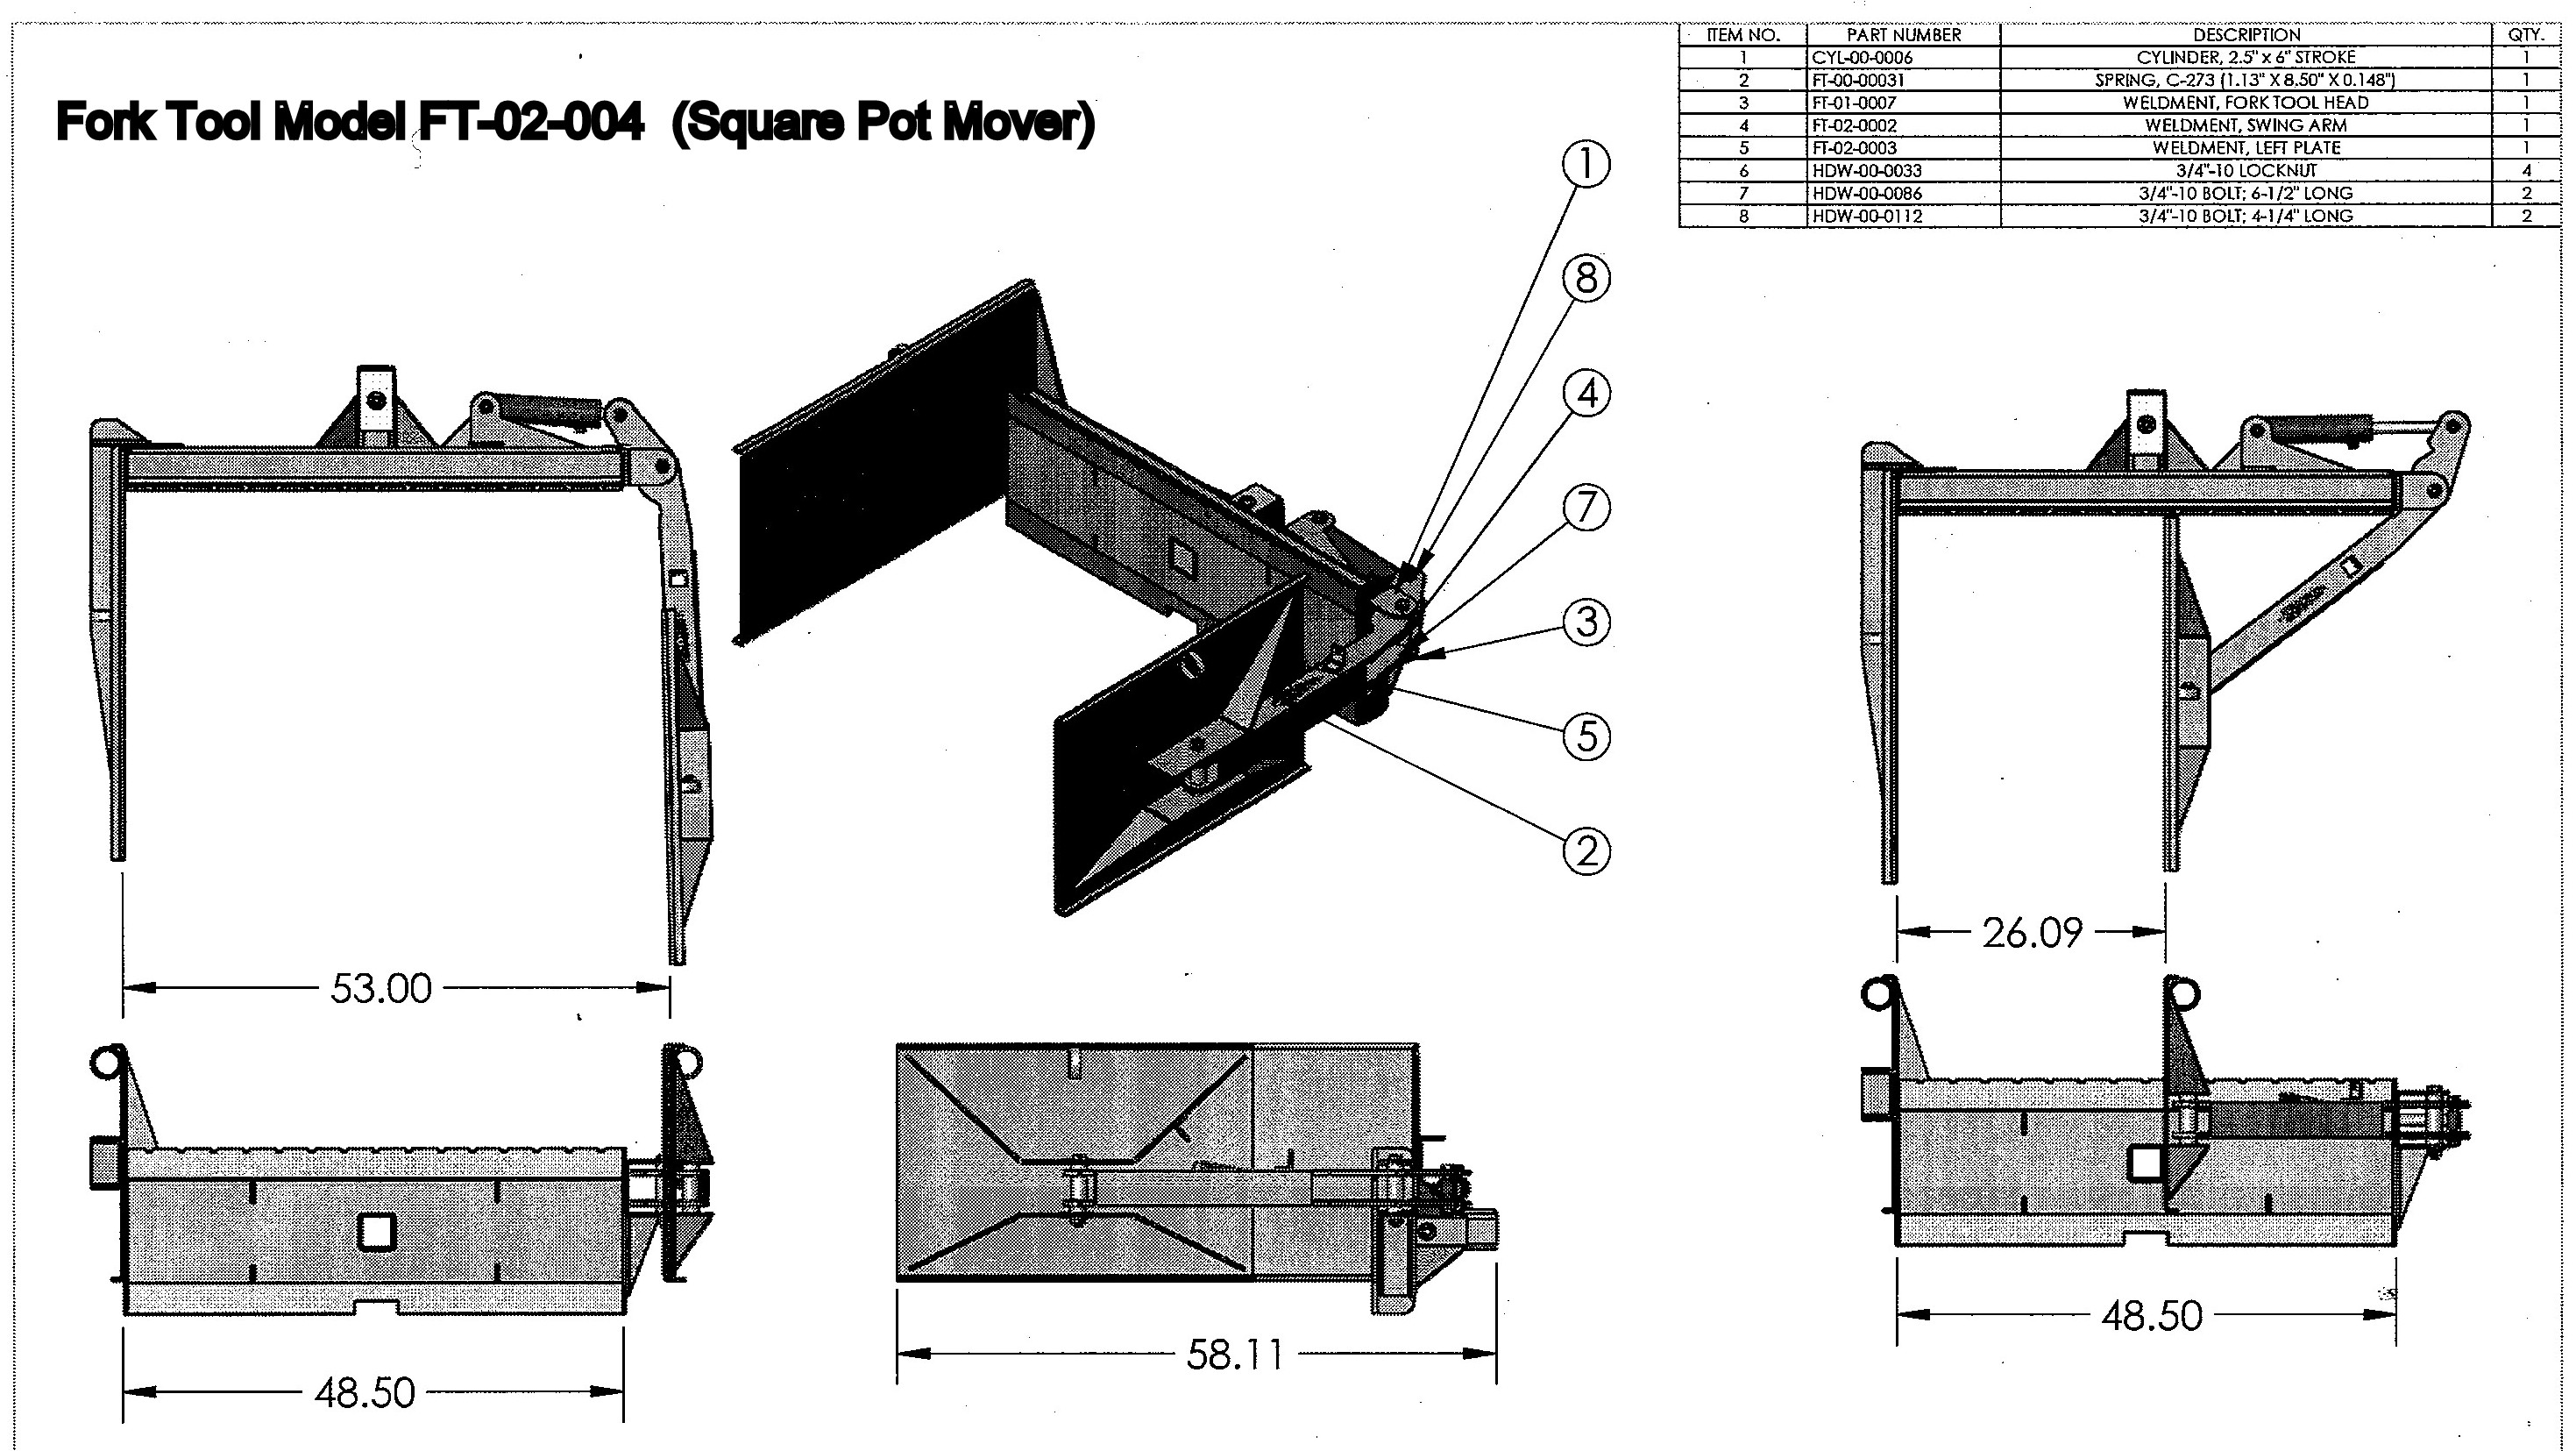 Square Pot Mover / Fork Tool